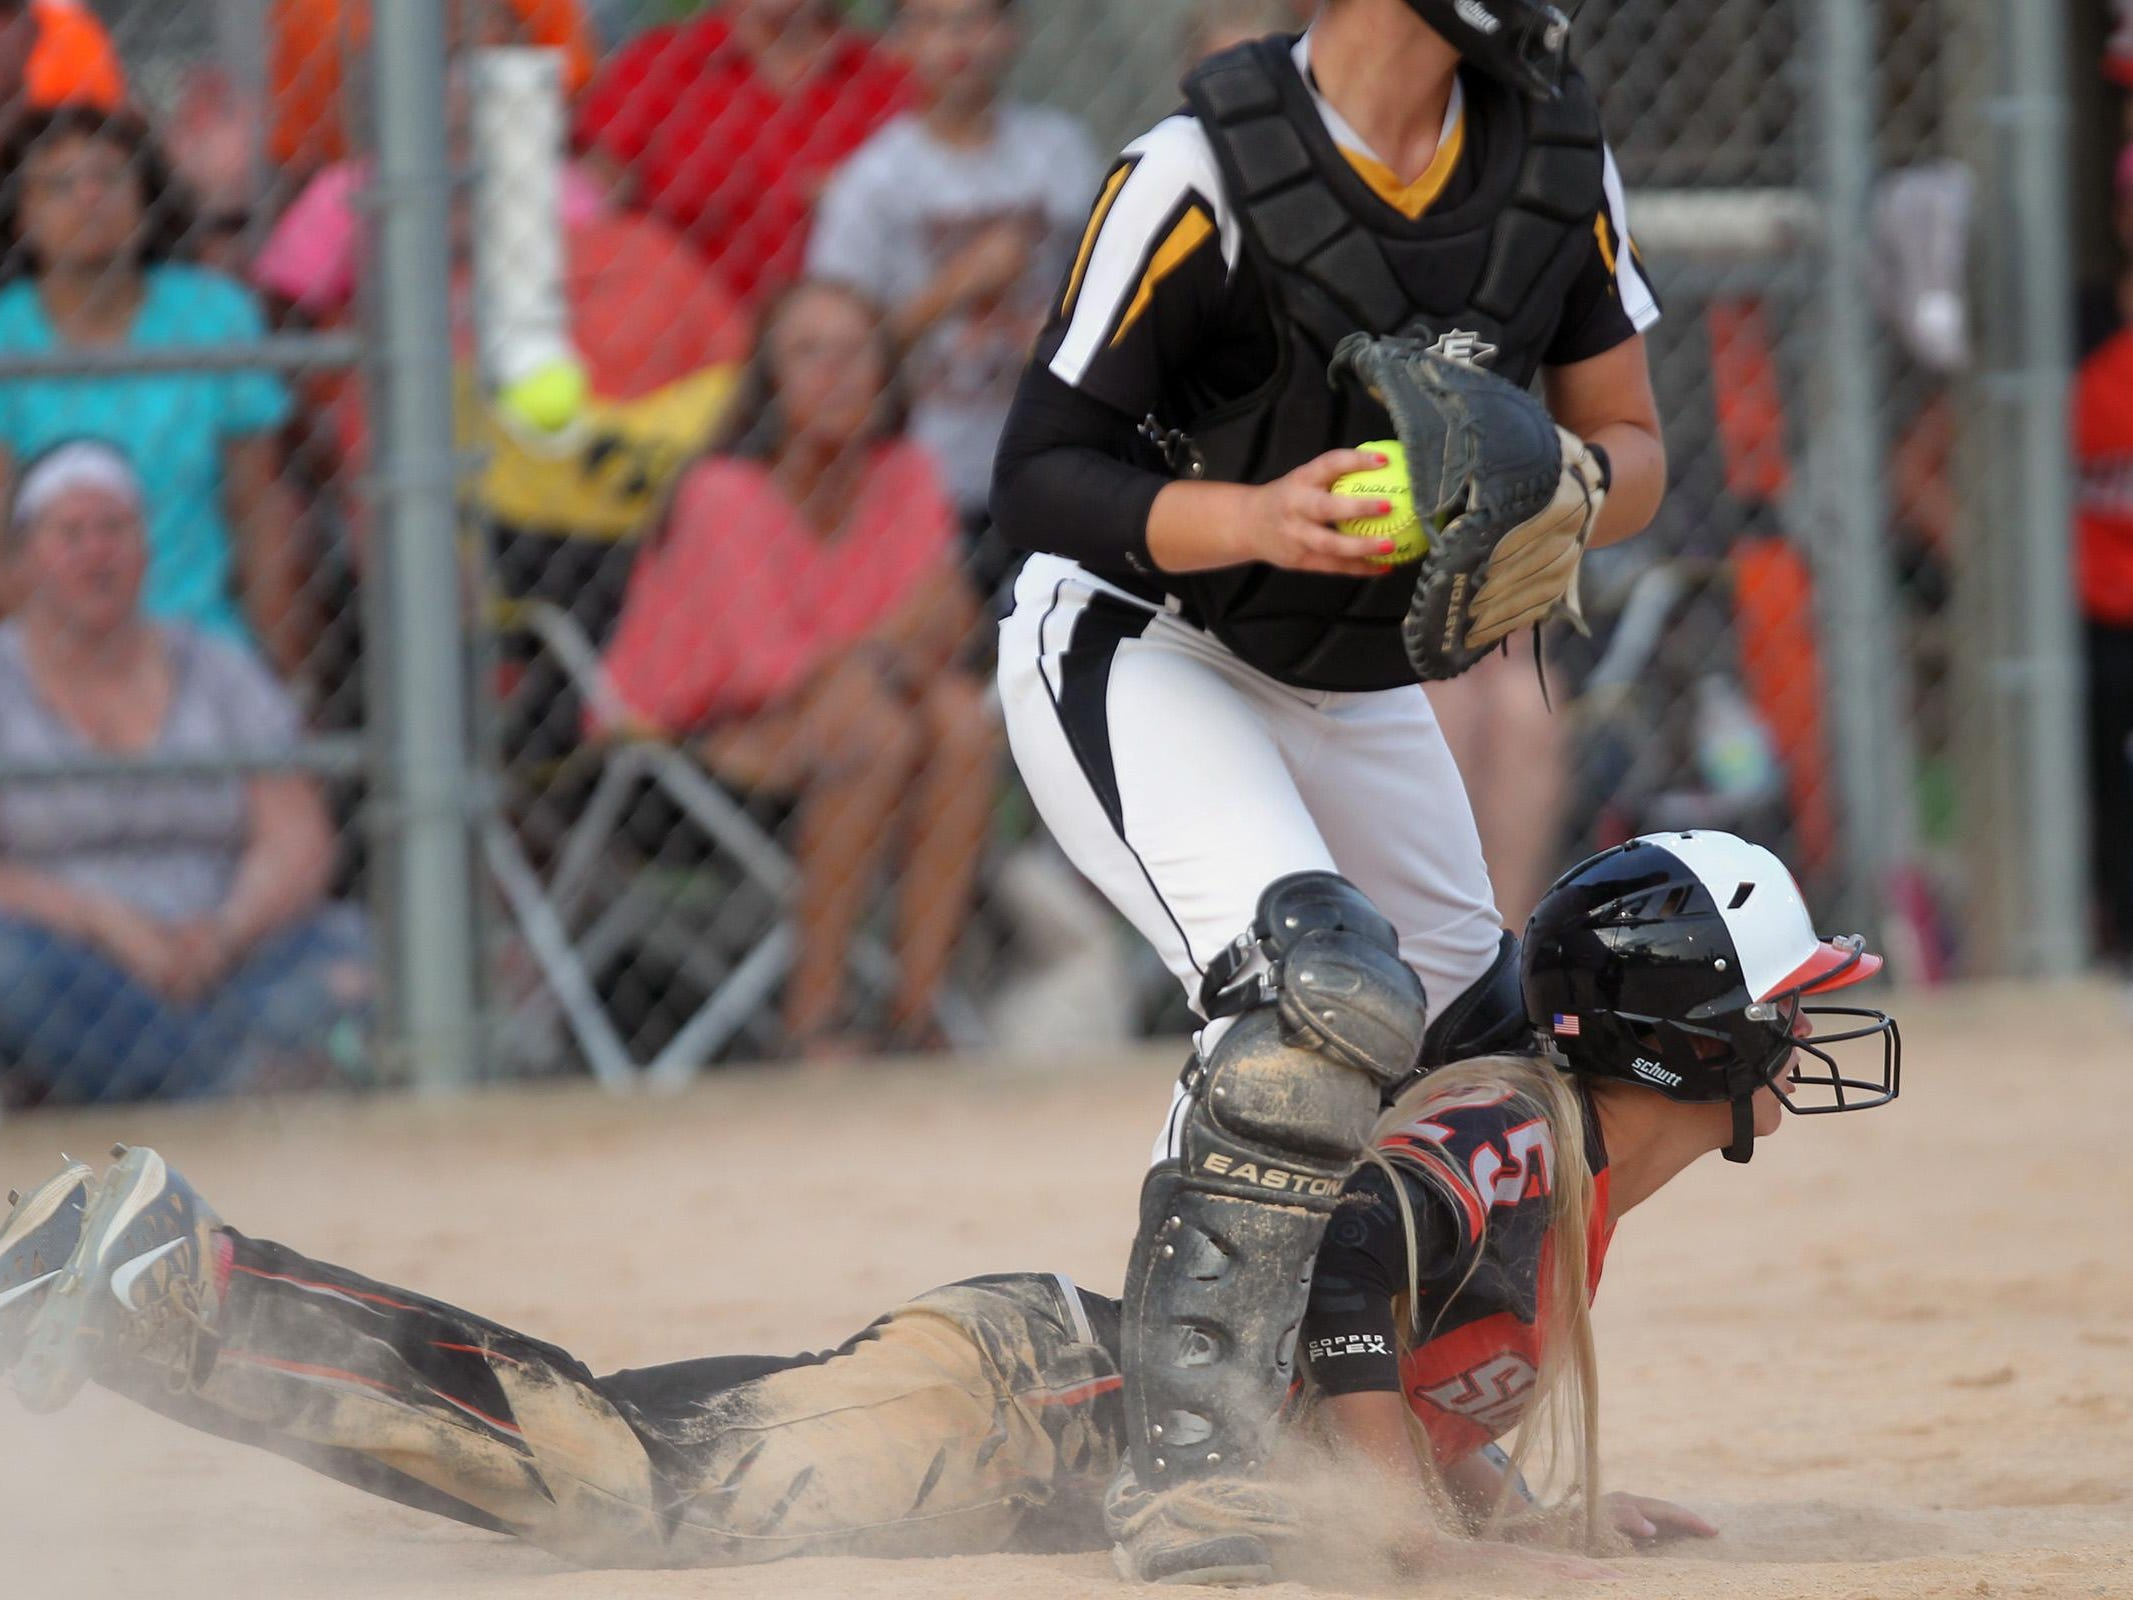 Solon's Nichole Oberthein lies on the ground after getting tagged out at home plate during the Spartans' regional game against Mid-Prairie at Solon on Friday, July 10, 2015. David Scrivner / Iowa City Press-Citizen